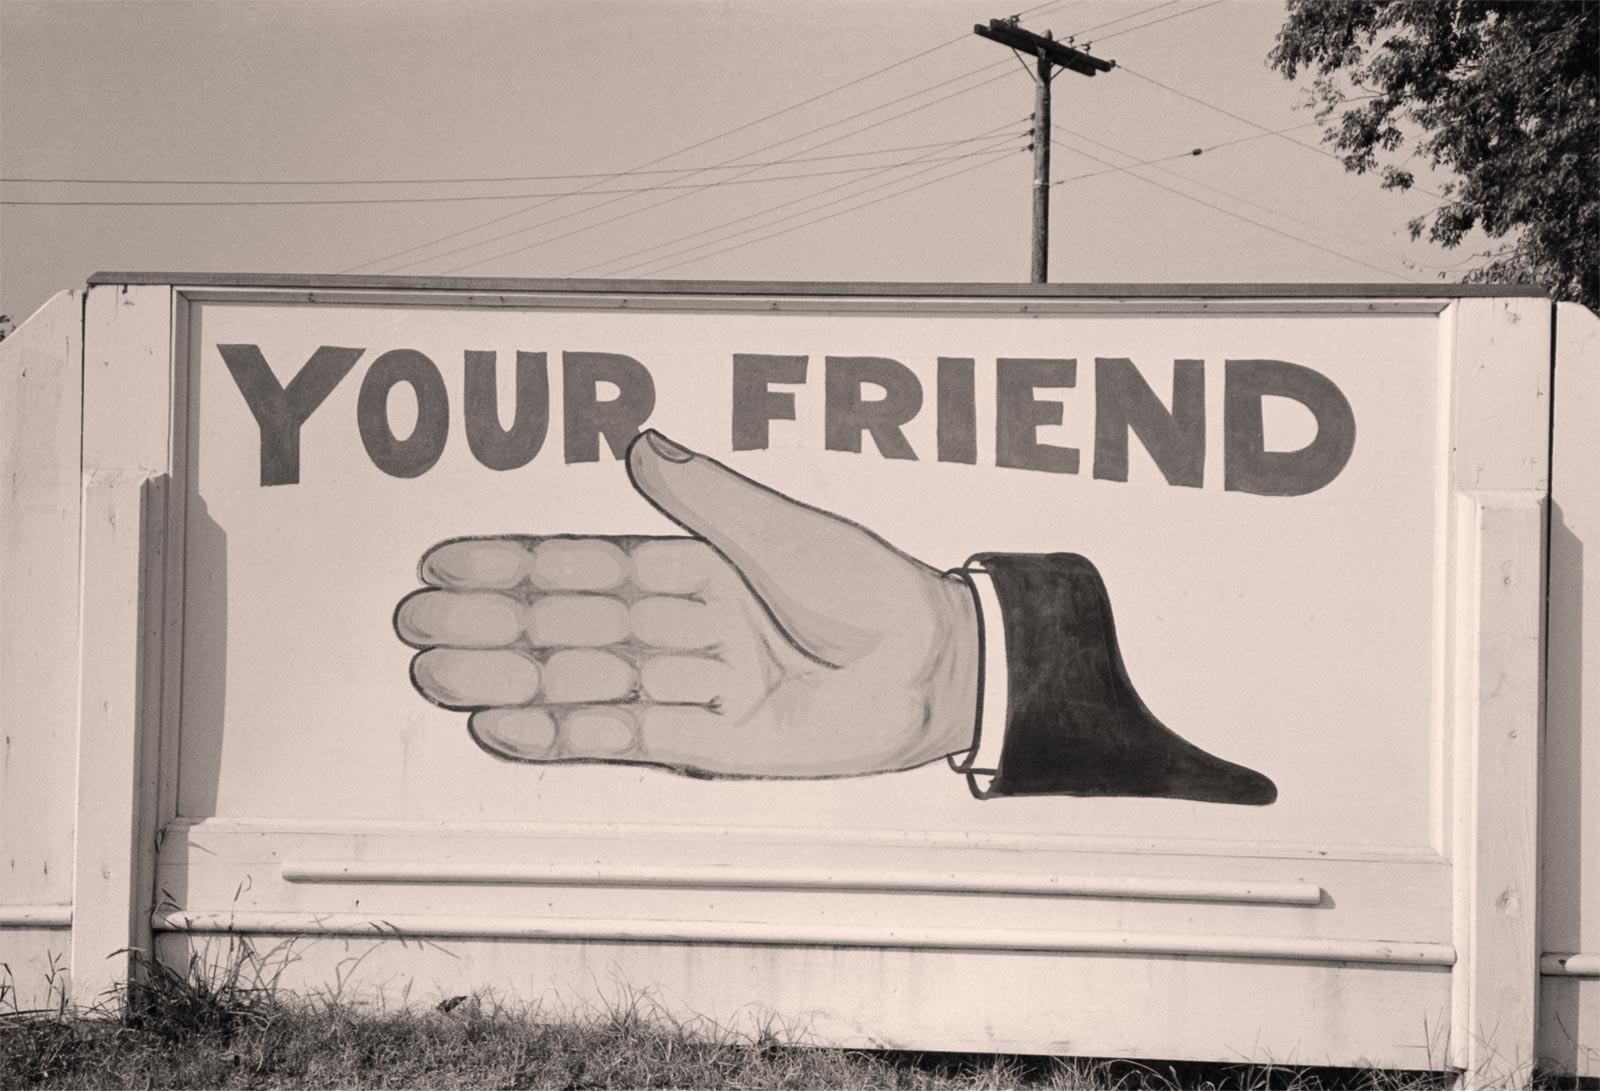 Your friend hand